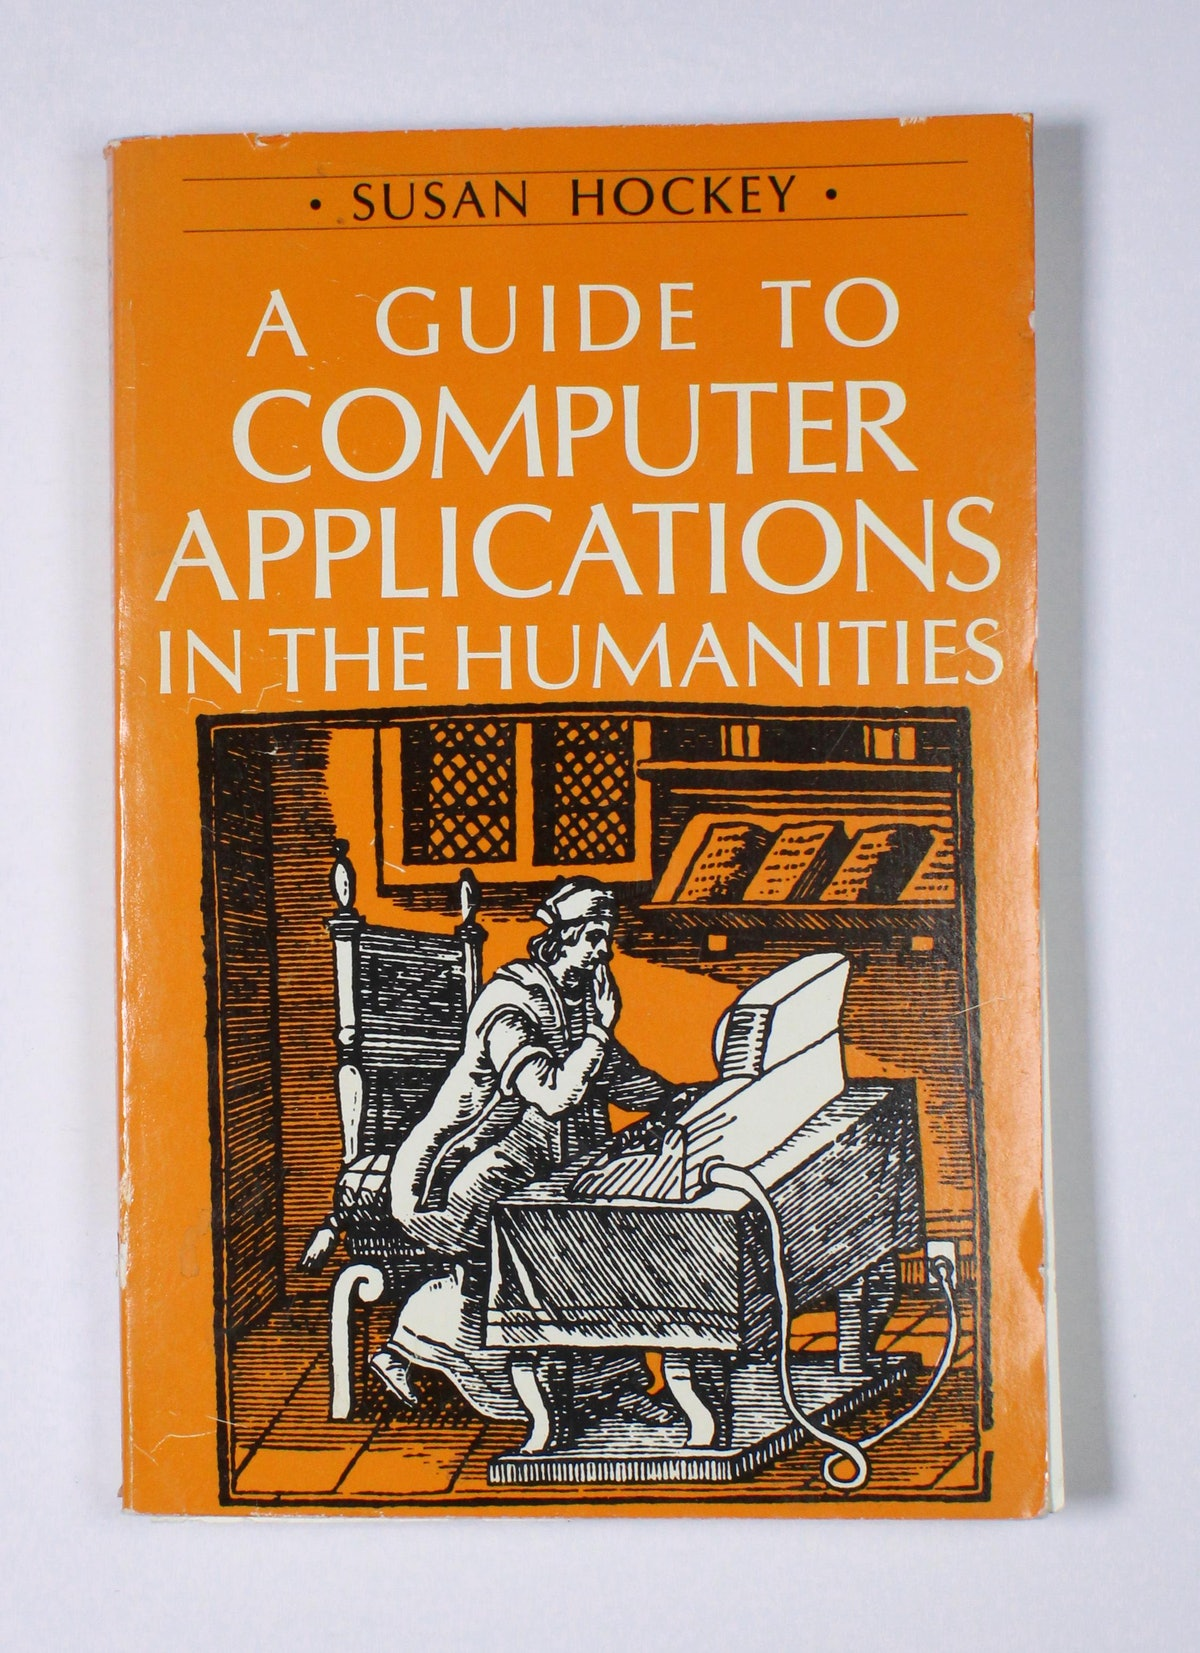 A Guide to Computer Applications in the Humanities